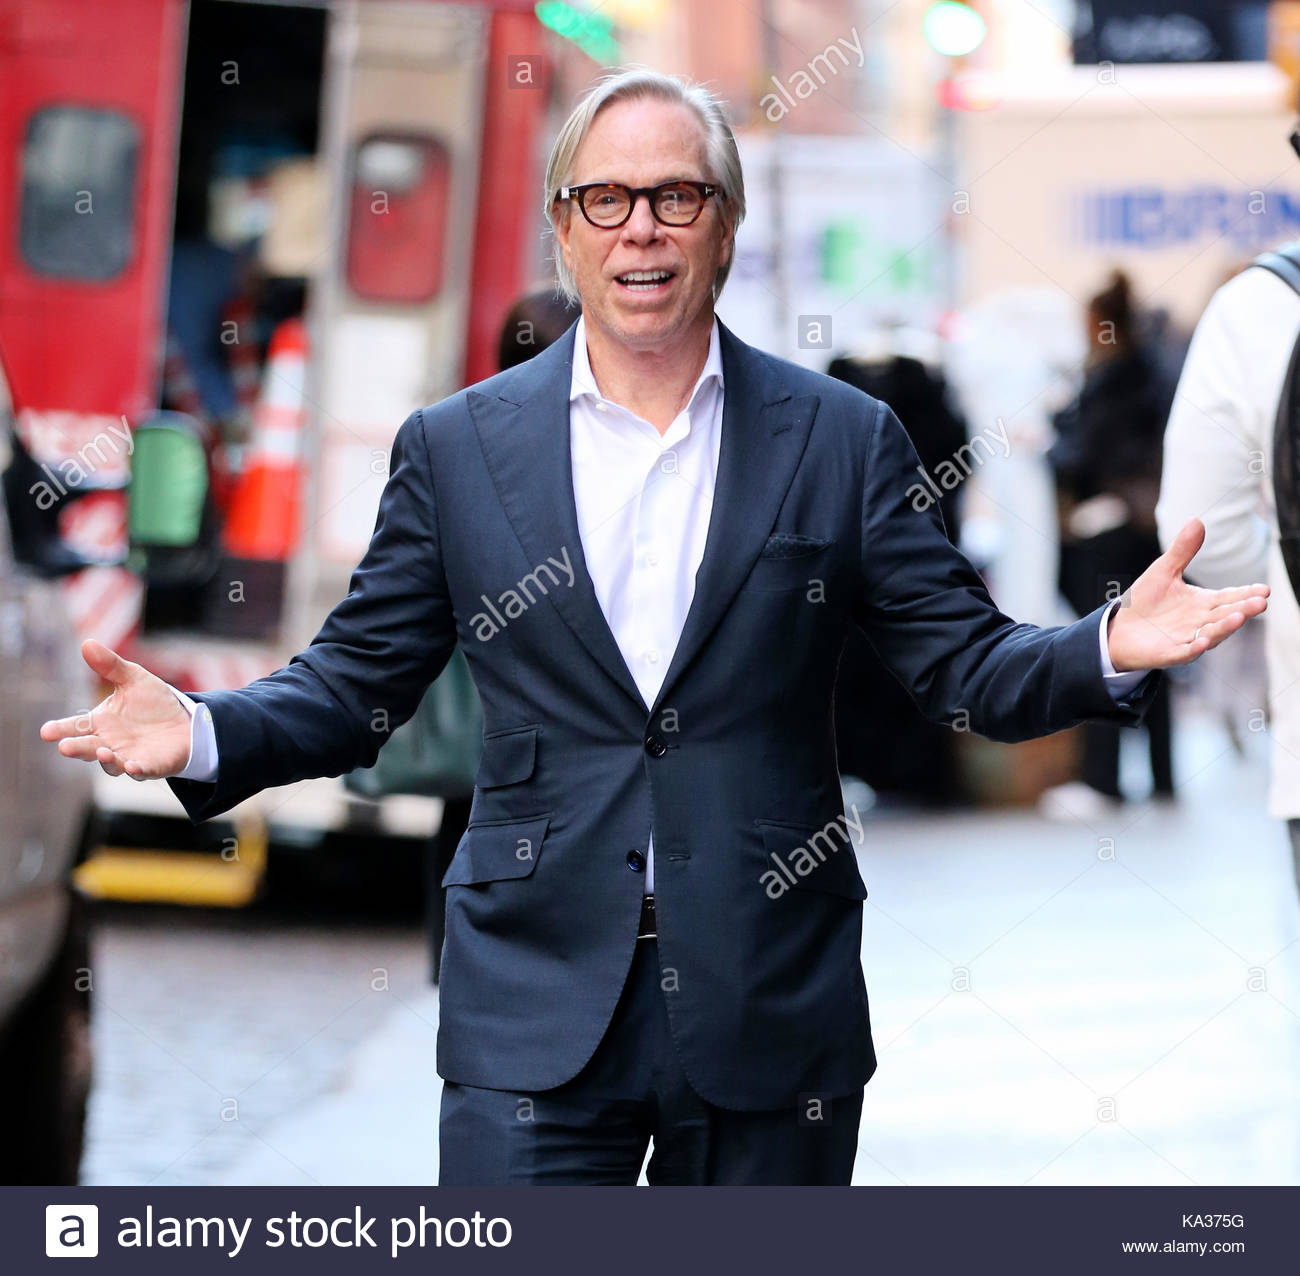 96ab8450e Tommy Hilfiger. Fashion designer Tommy Hilfiger stops by the Mercer Hotel  in SoHo on October 30, 2014 in New York City.